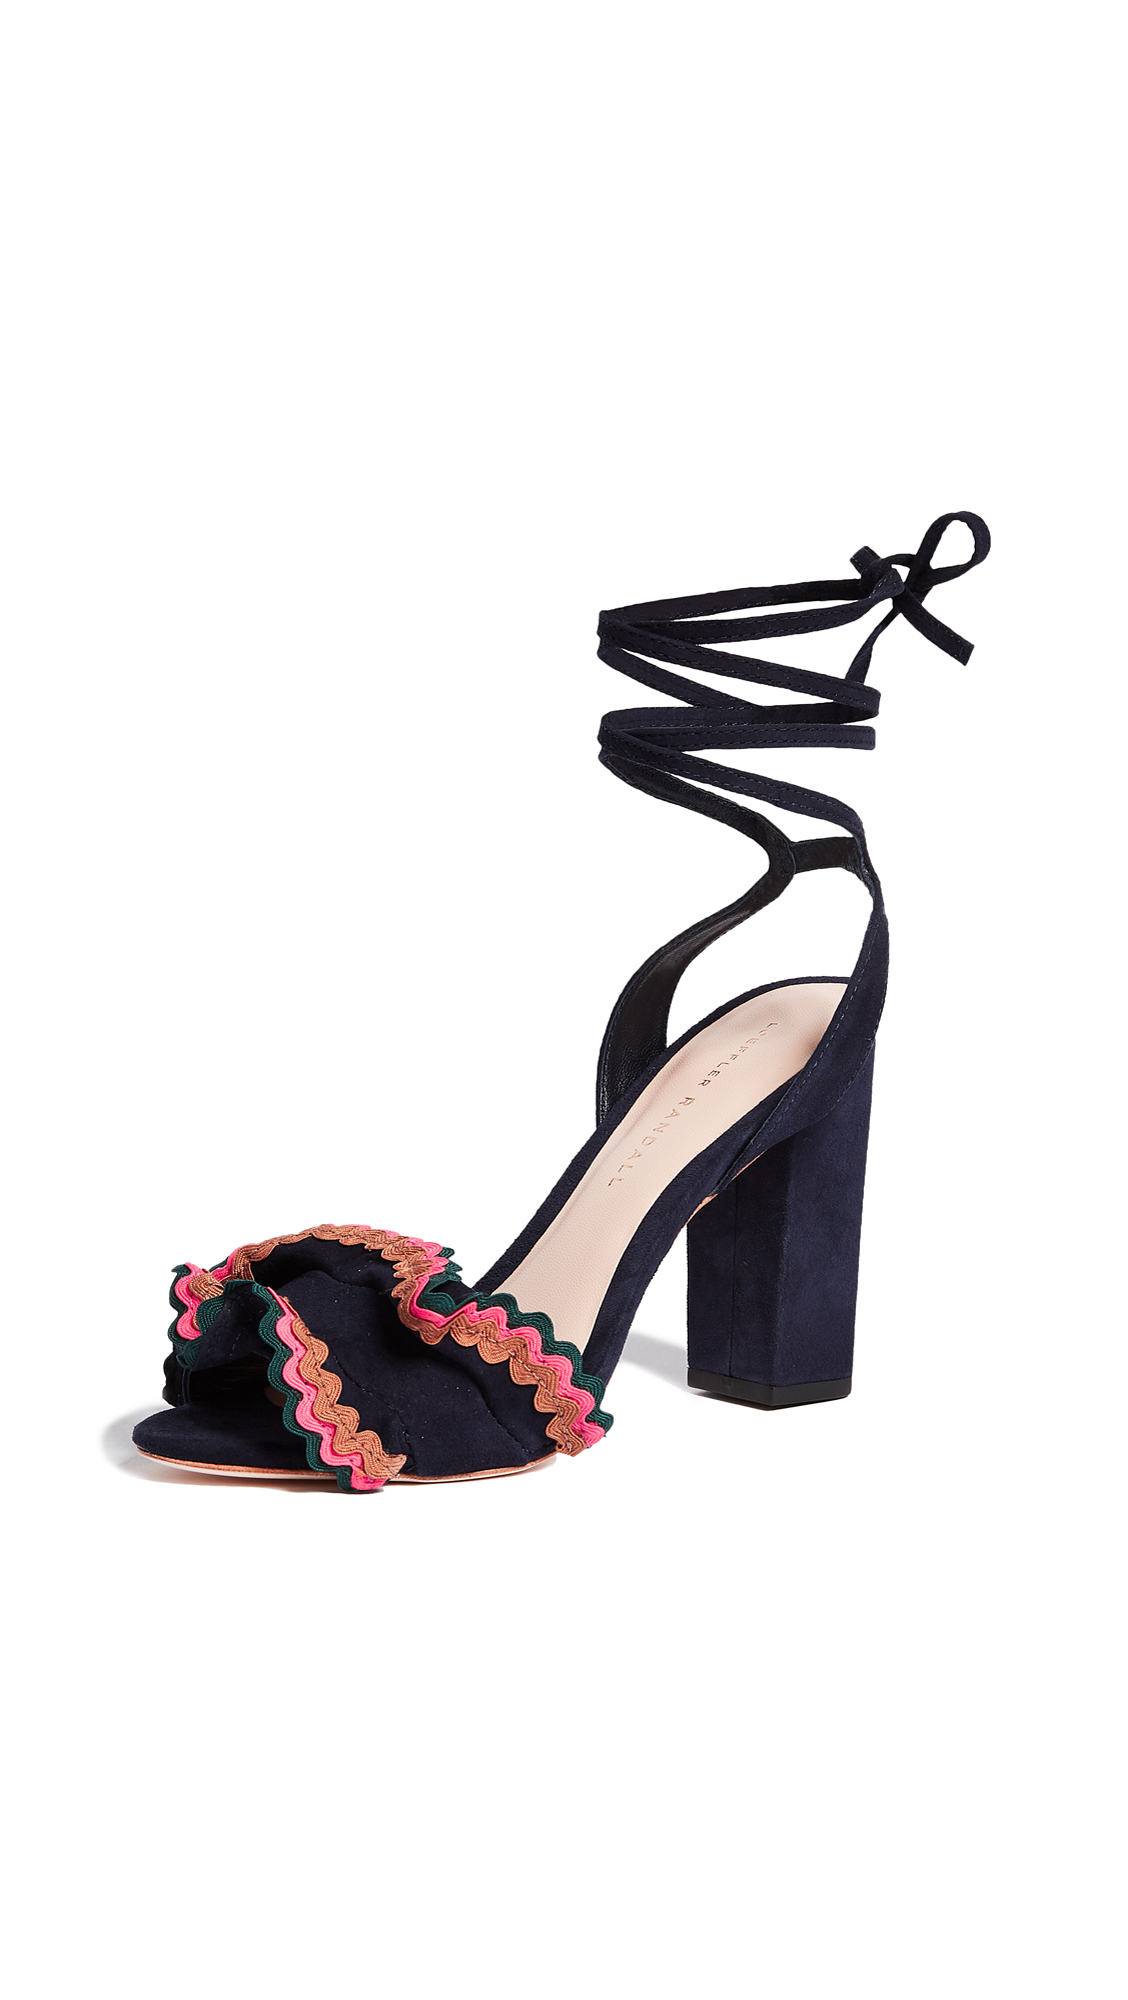 Loeffler Randall Dot Wrap Sandals - Eclipse/Multi